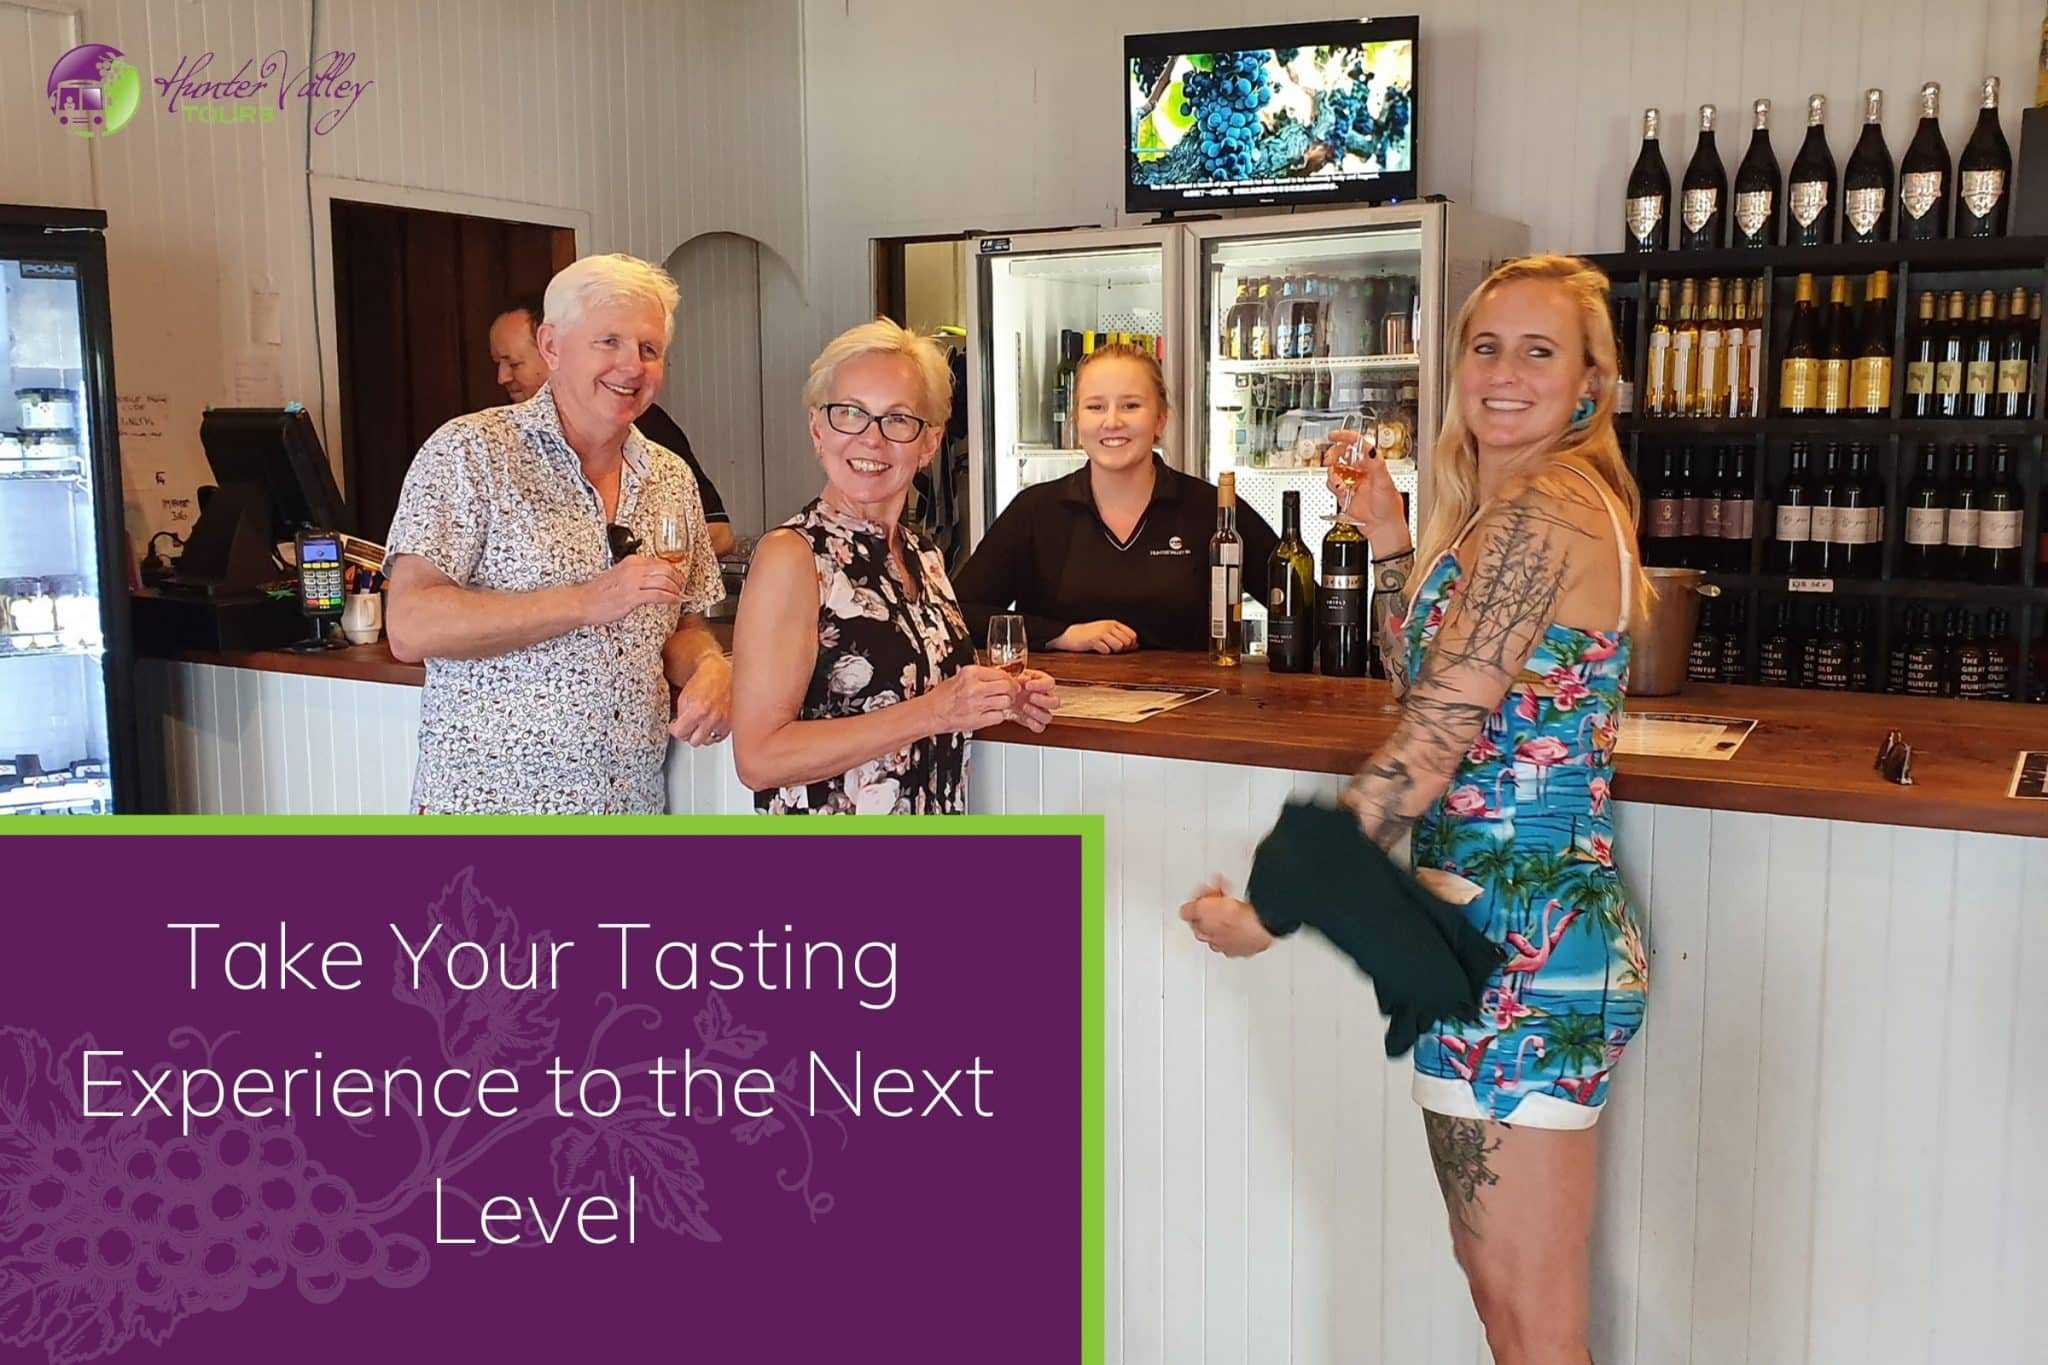 Take Your Tasting Experience to the Next Level